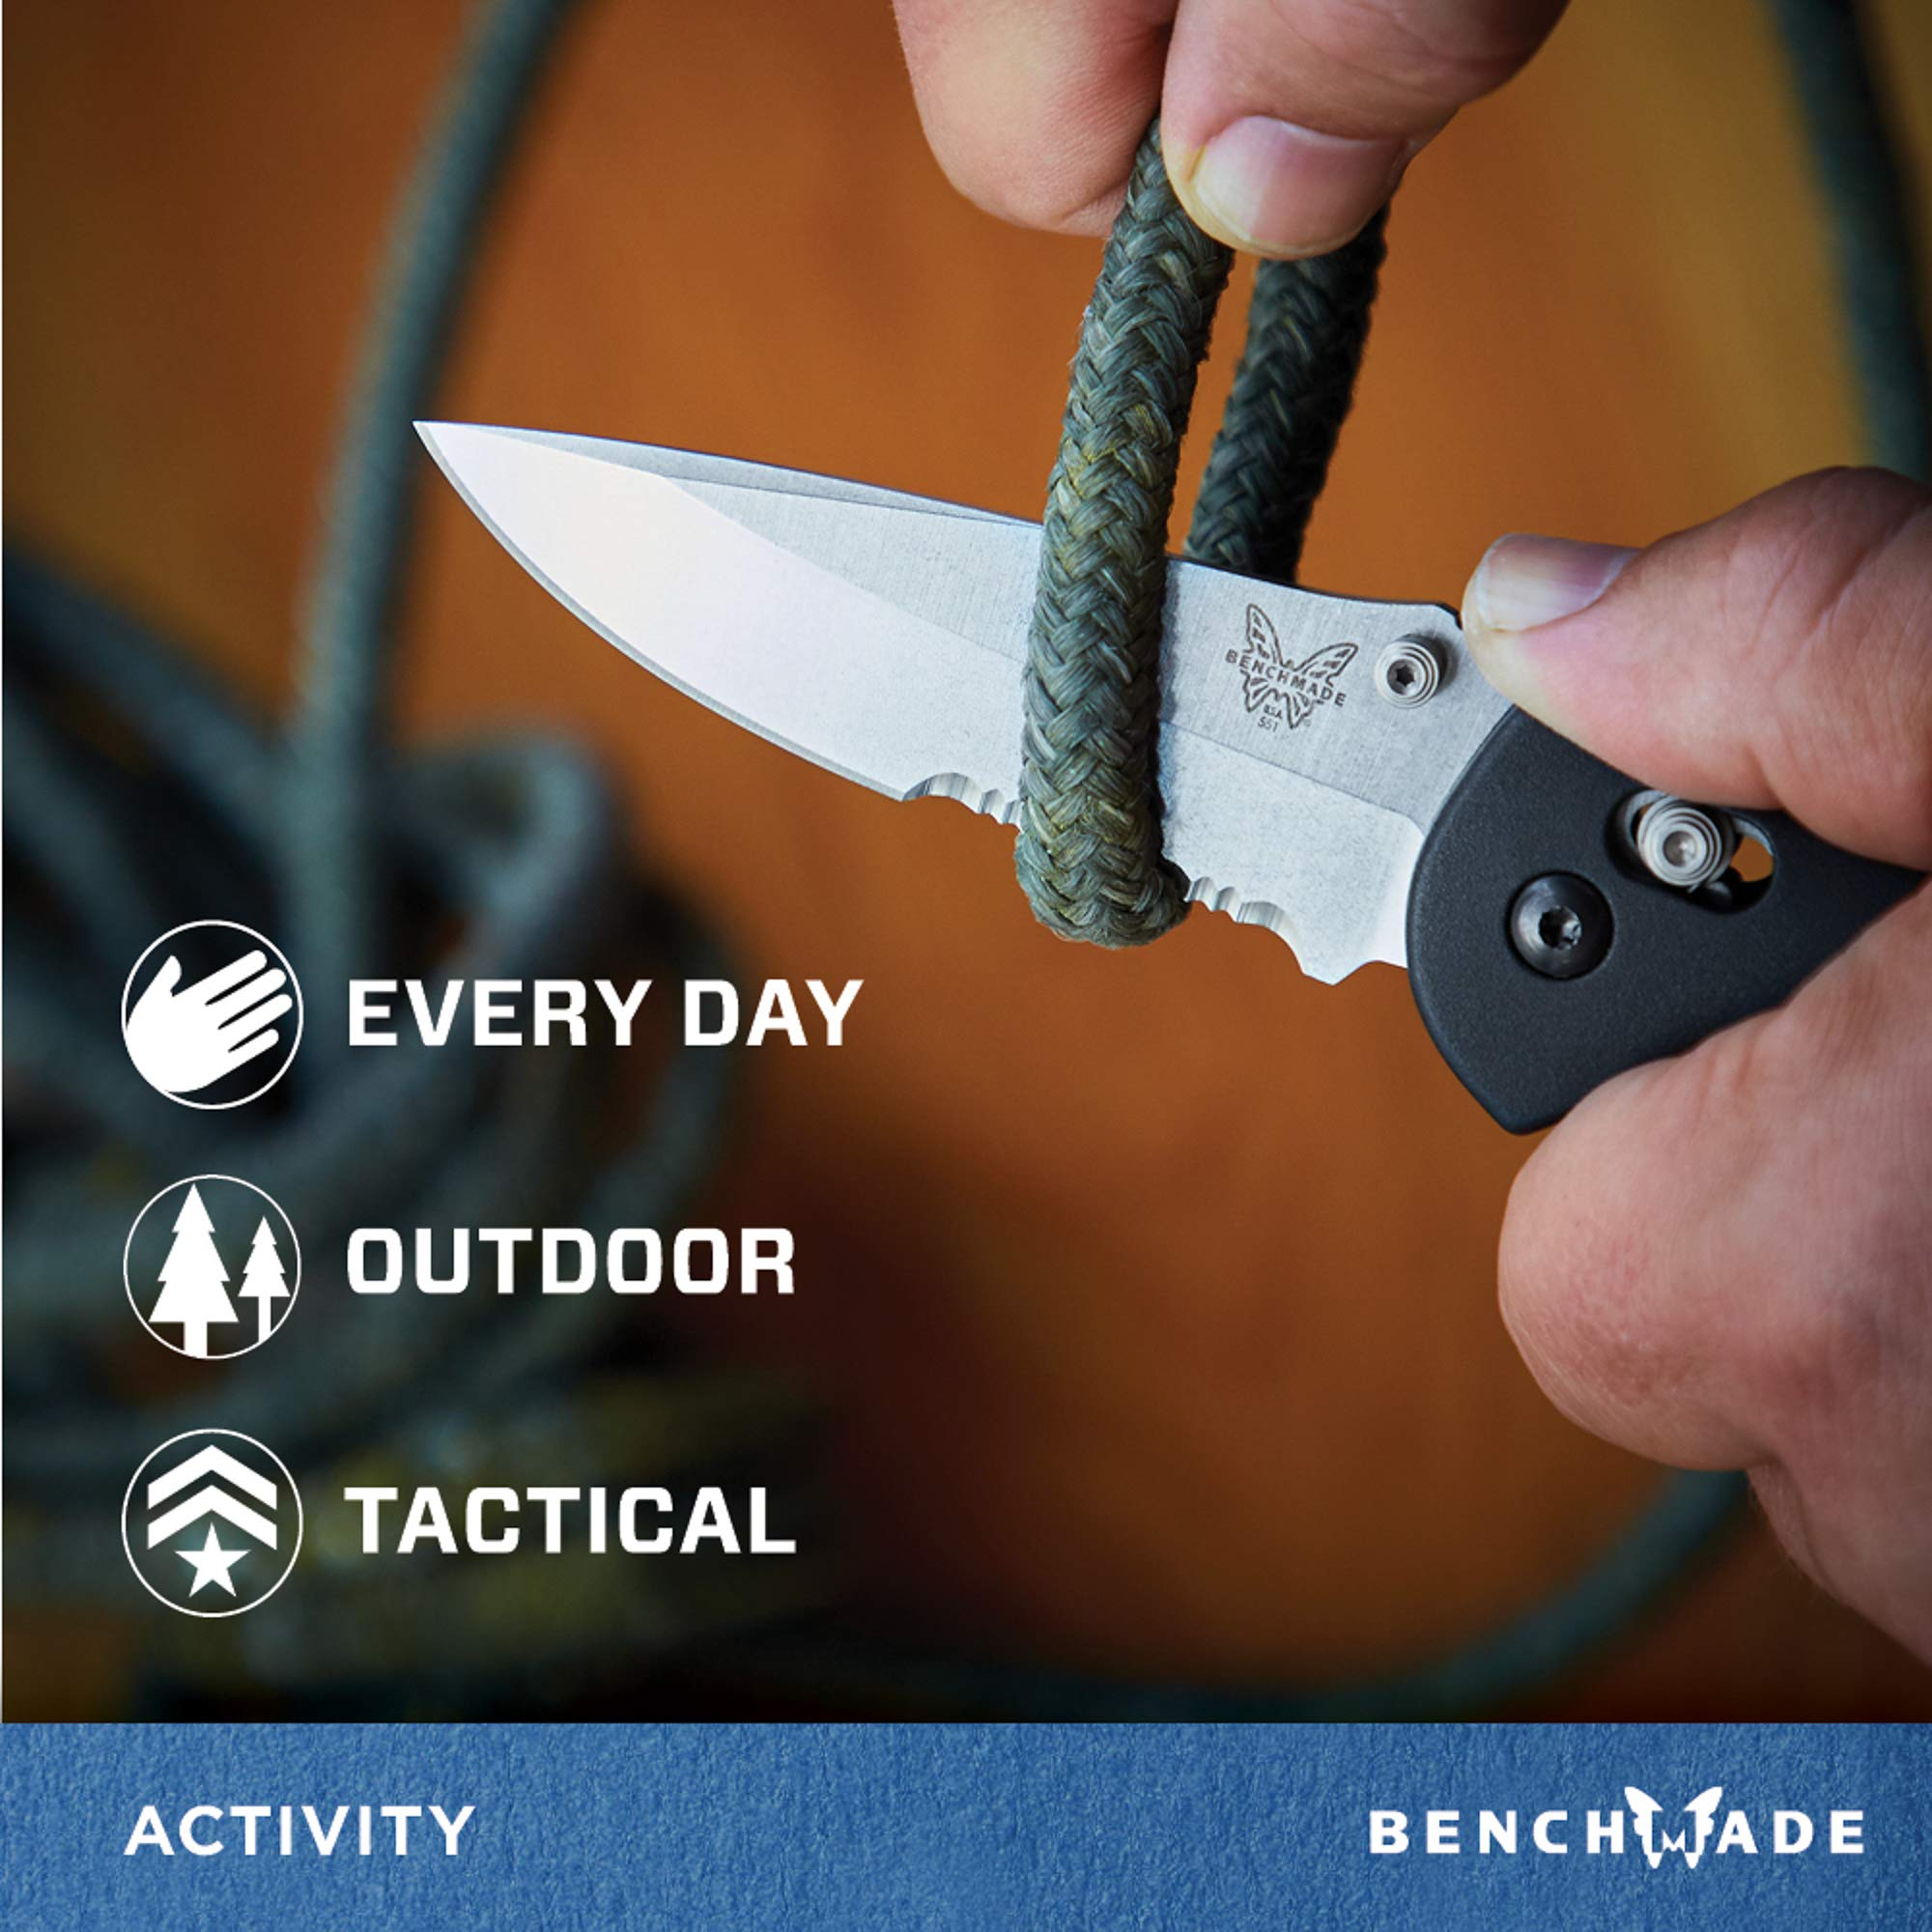 Benchmade - Griptilian 551 Knife with CPM-S30V Steel, Drop-Point Blade, Serrated Edge, Satin Finish, Black Handle by Benchmade (Image #4)